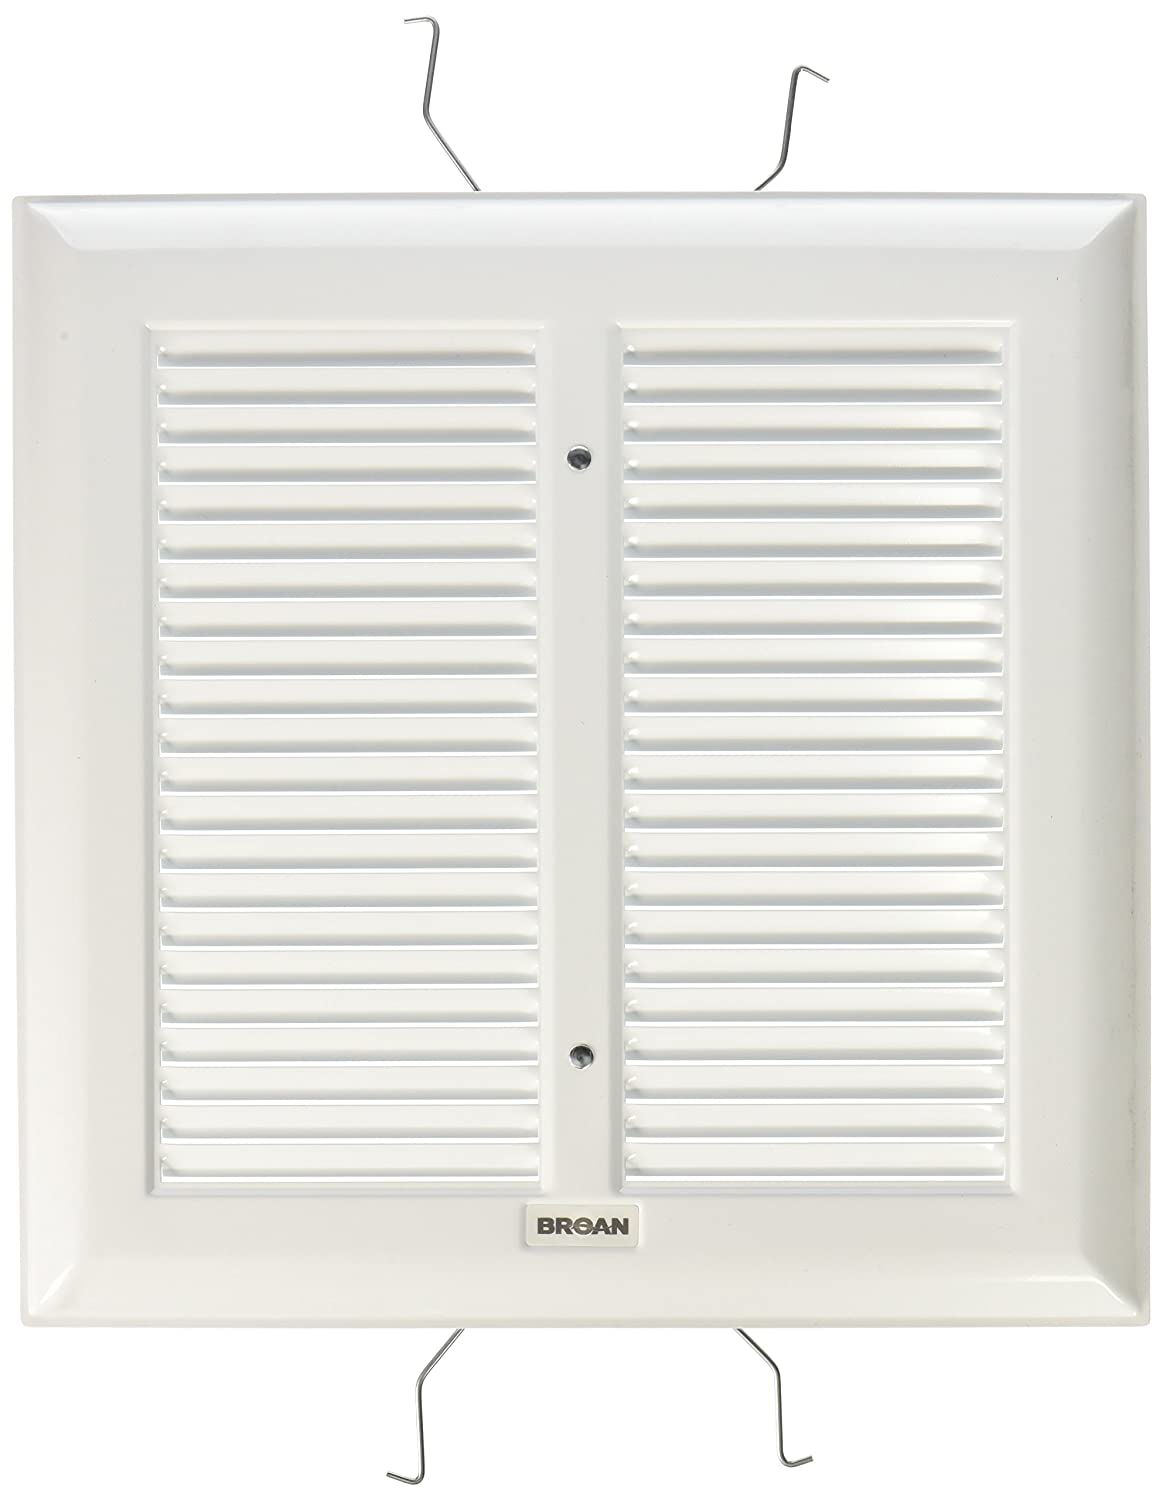 amazoncom broan s97011308 spring mounted bathroom fan covergrille assembly white home kitchen - Broan Bathroom Fan Cover